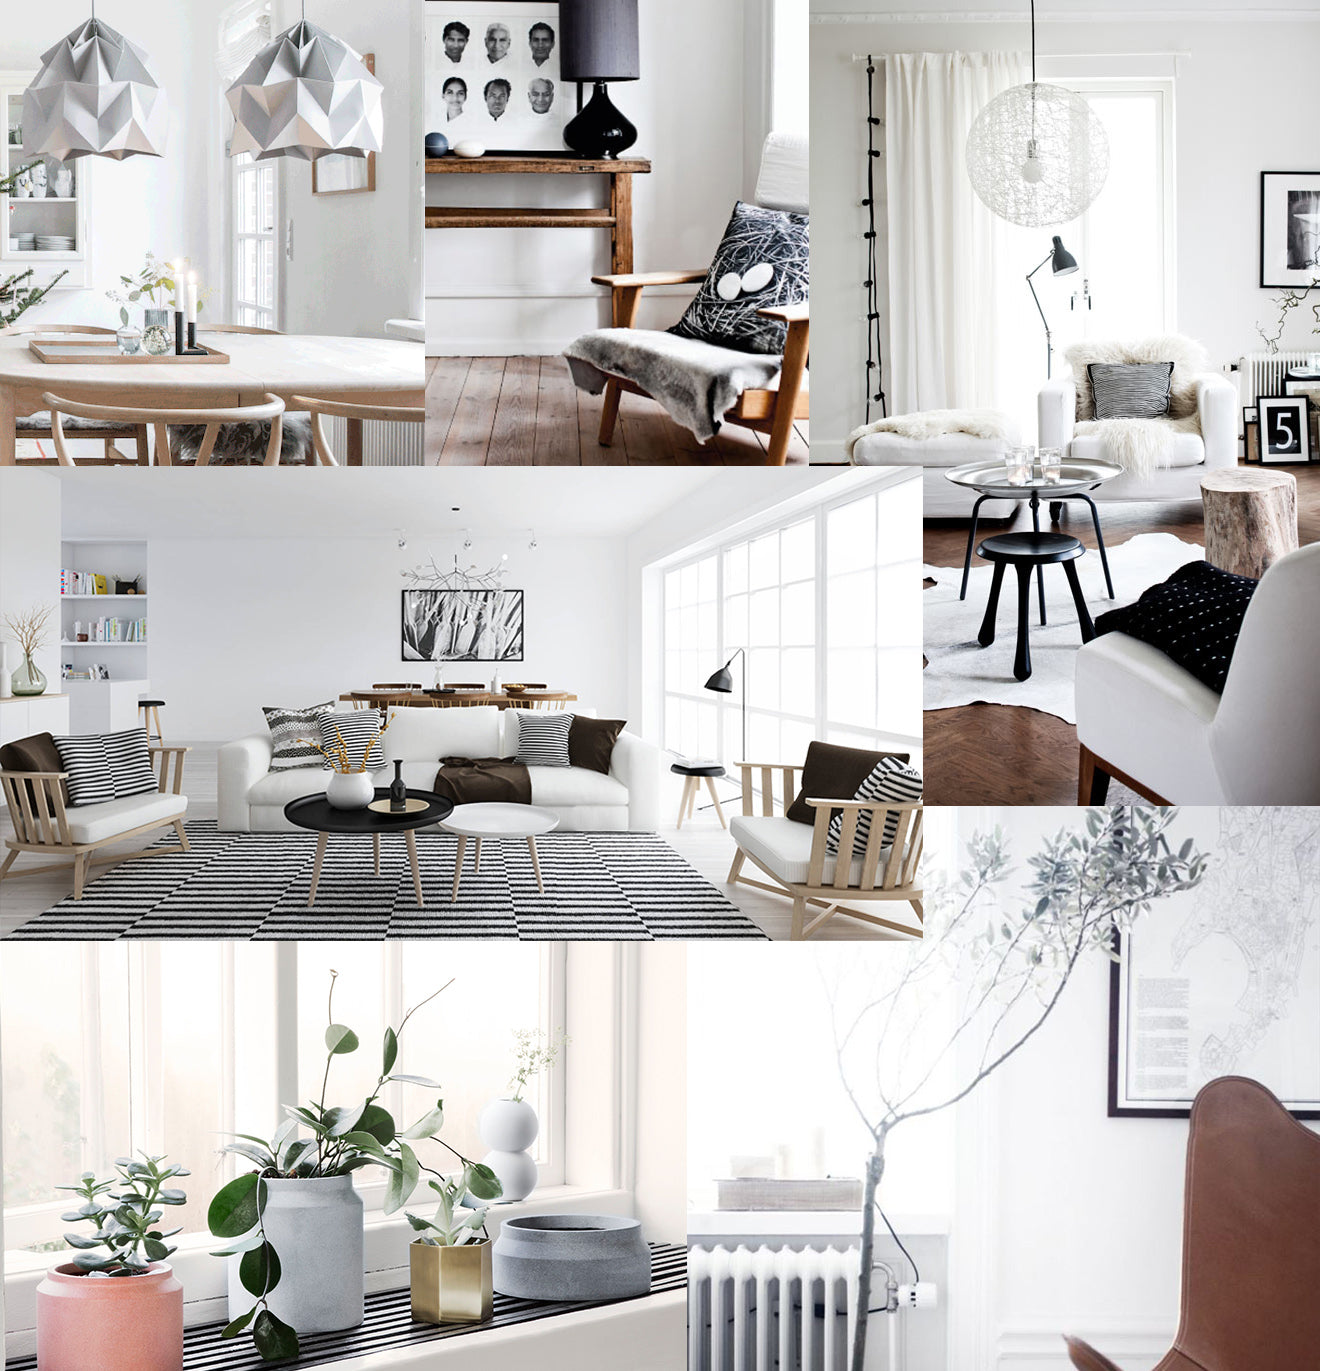 Nordic interior design inspiration mood board